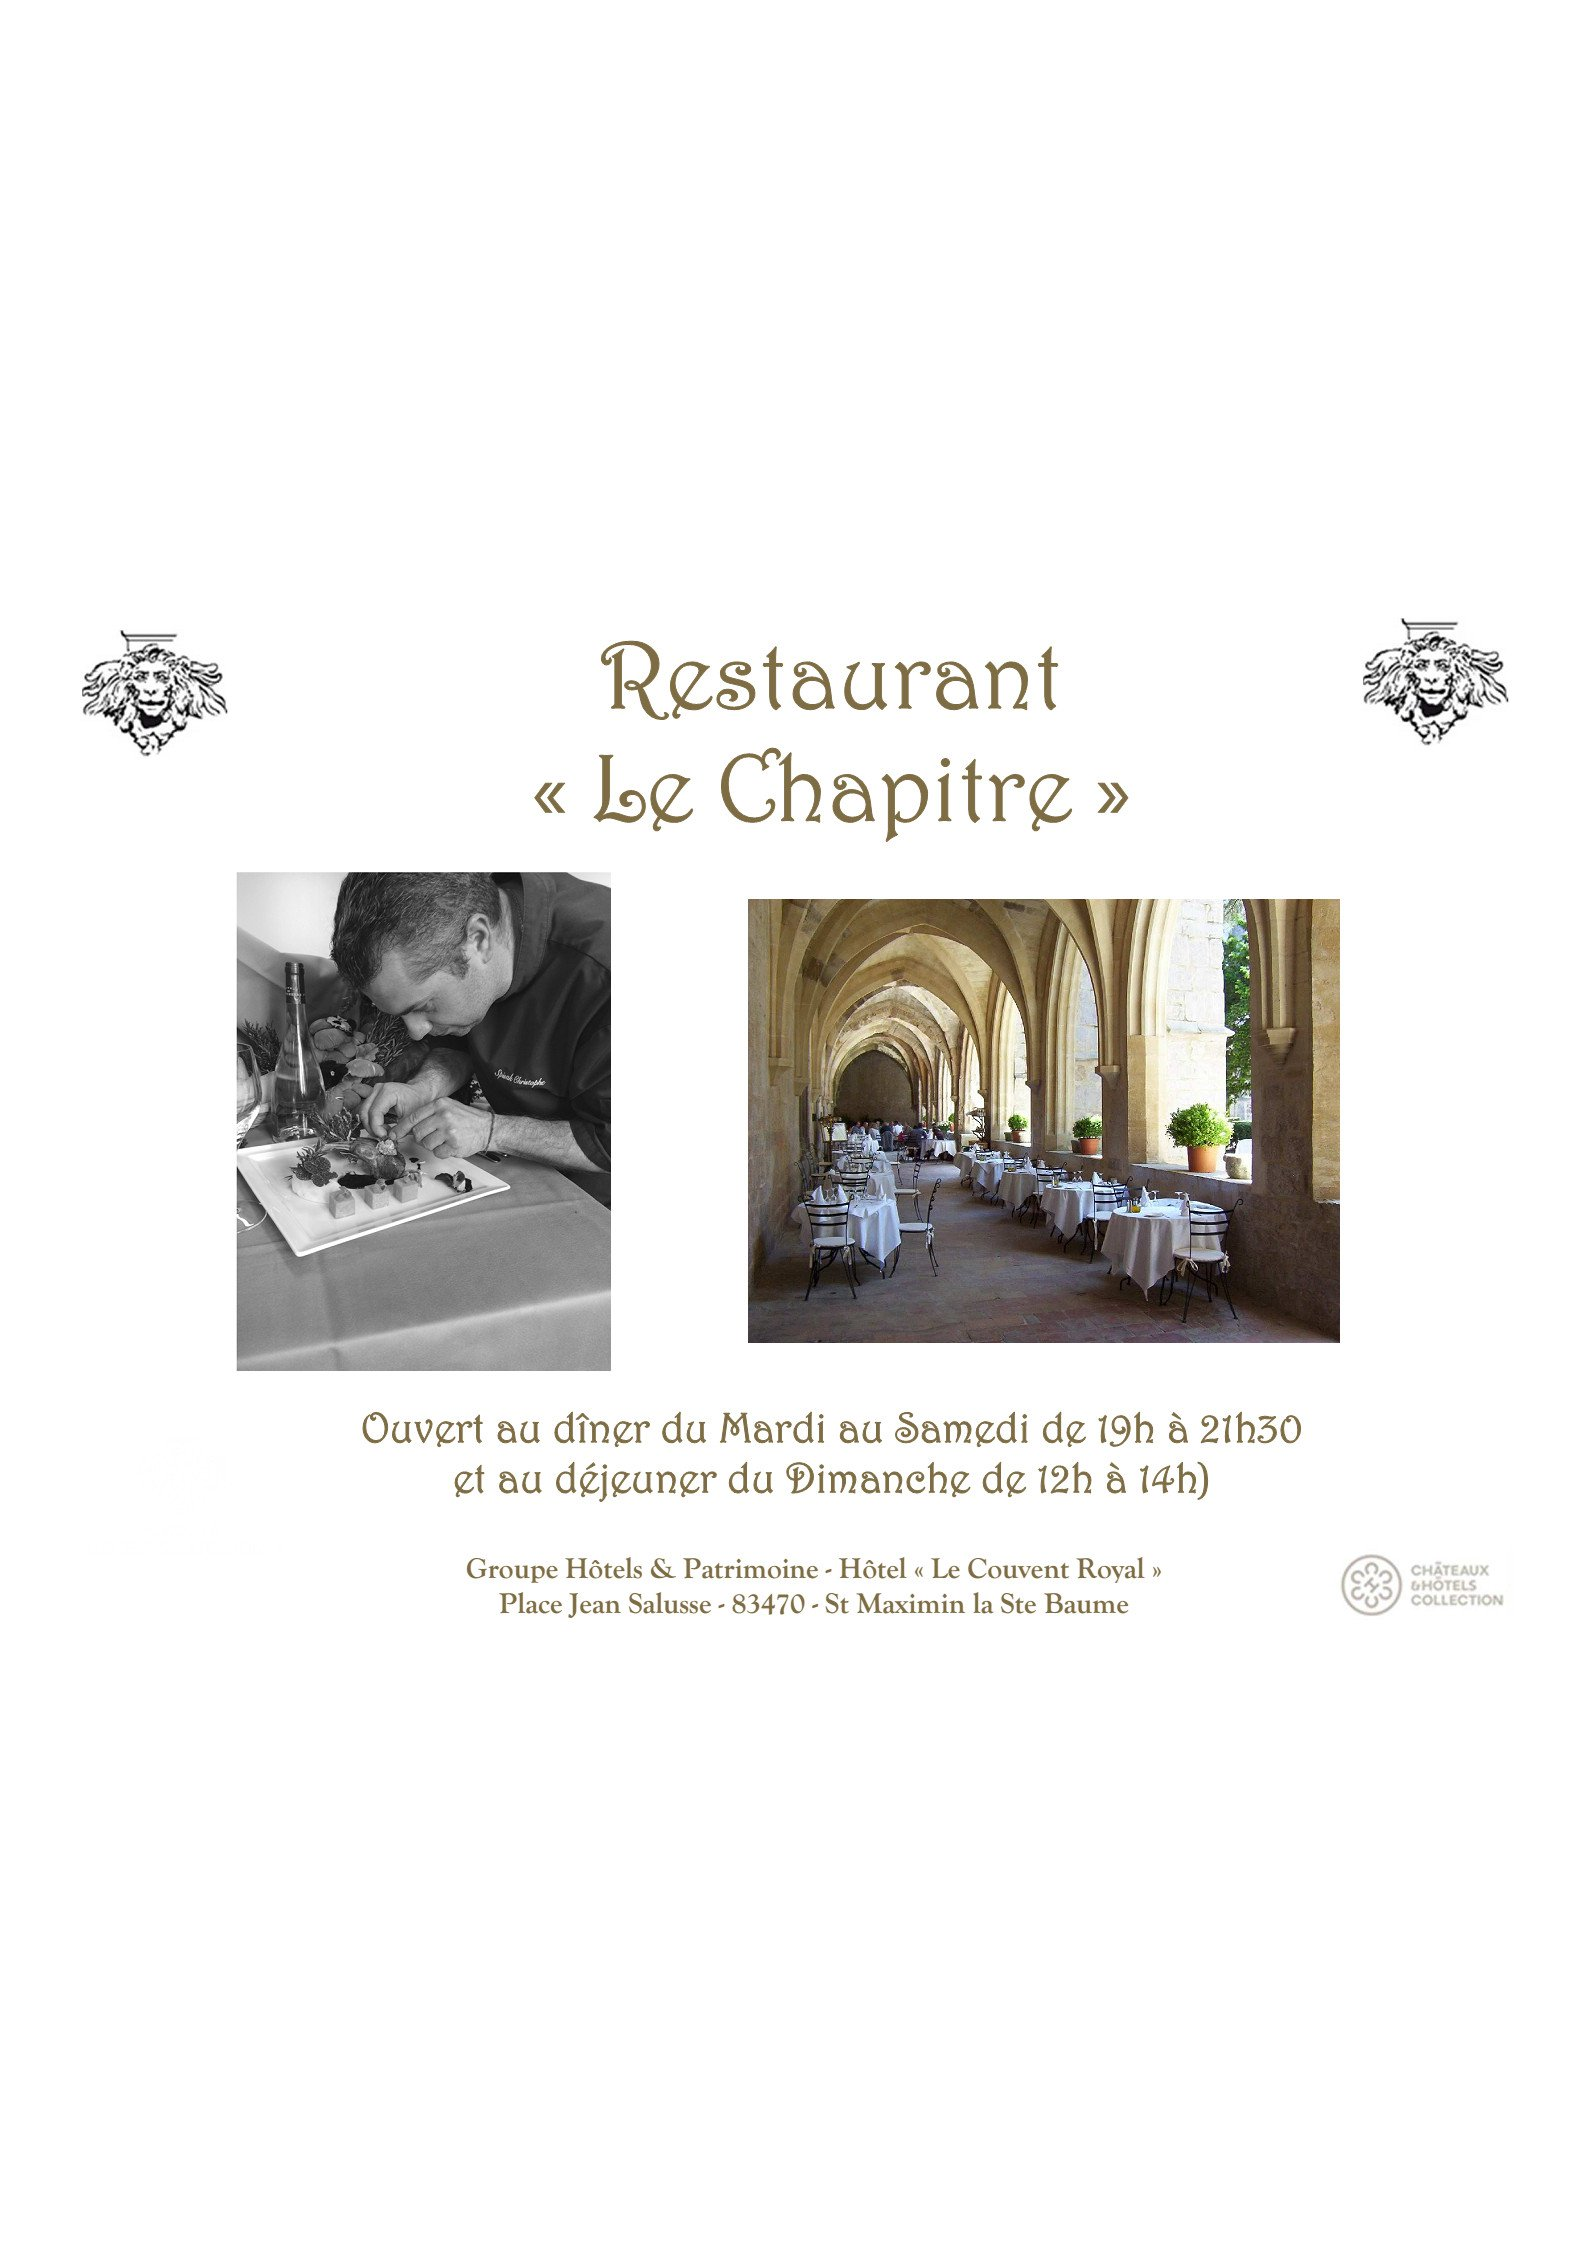 Le couvent royal saint maximin la sainte baume carte - Restaurant la table de bruno saint maximin ...